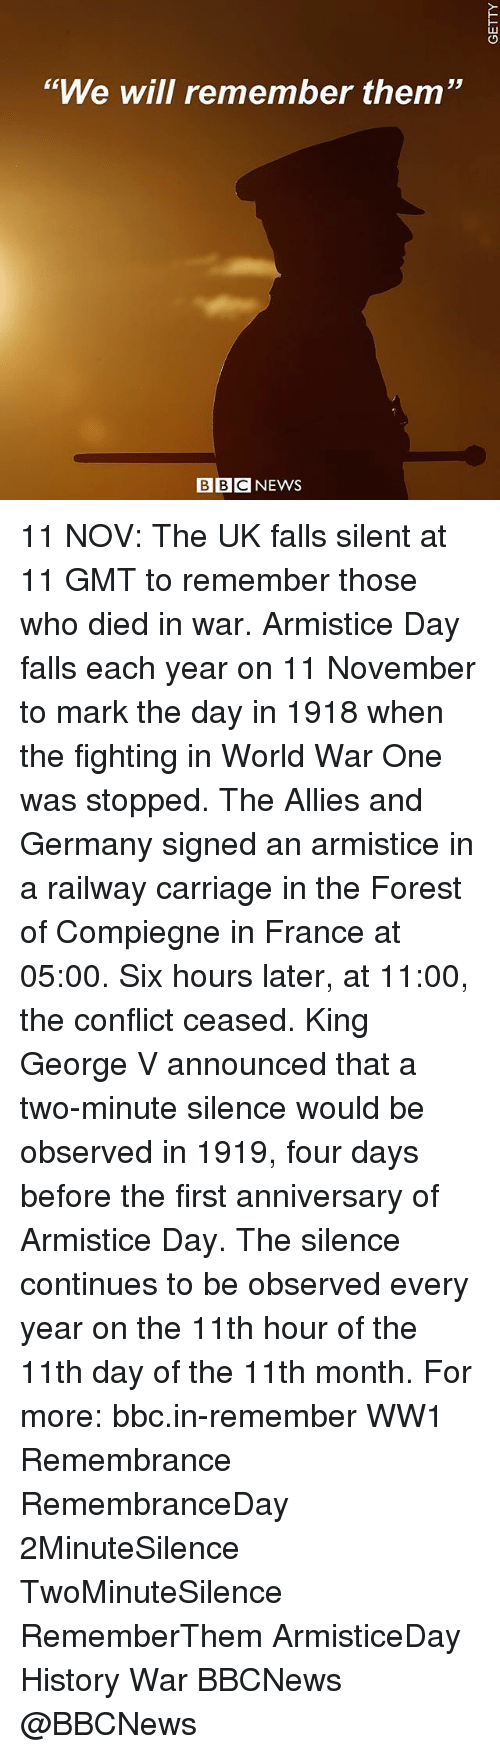 """Memes, France, and Germany: """"We will remember them""""  46  BBCNEWS 11 NOV: The UK falls silent at 11 GMT to remember those who died in war. Armistice Day falls each year on 11 November to mark the day in 1918 when the fighting in World War One was stopped. The Allies and Germany signed an armistice in a railway carriage in the Forest of Compiegne in France at 05:00. Six hours later, at 11:00, the conflict ceased. King George V announced that a two-minute silence would be observed in 1919, four days before the first anniversary of Armistice Day. The silence continues to be observed every year on the 11th hour of the 11th day of the 11th month. For more: bbc.in-remember WW1 Remembrance RemembranceDay 2MinuteSilence TwoMinuteSilence RememberThem ArmisticeDay History War BBCNews @BBCNews"""